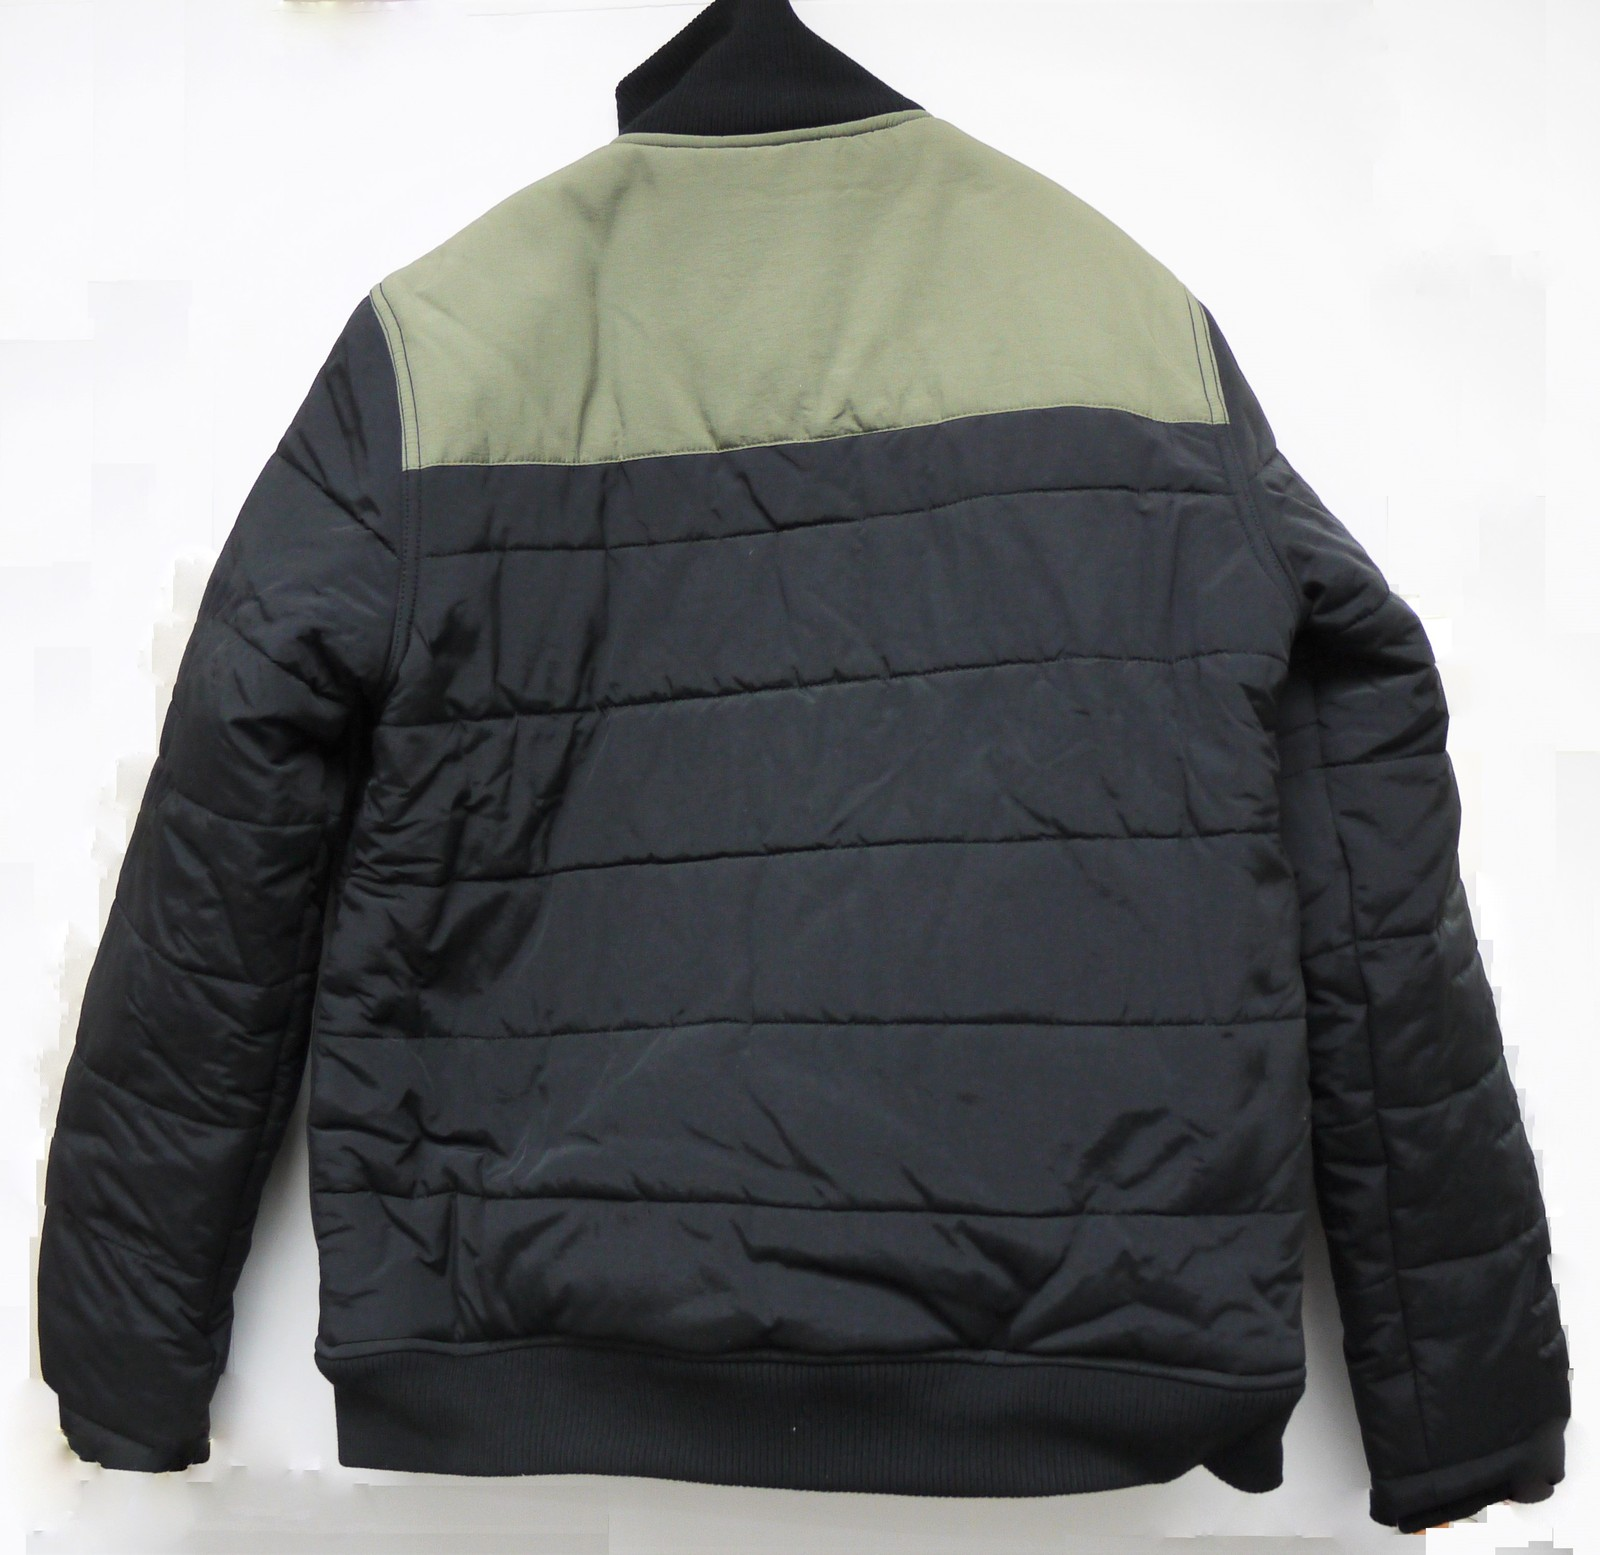 I5PCBKMM35 insight Heavyweight Puffer Black Coat Medium Size for Men